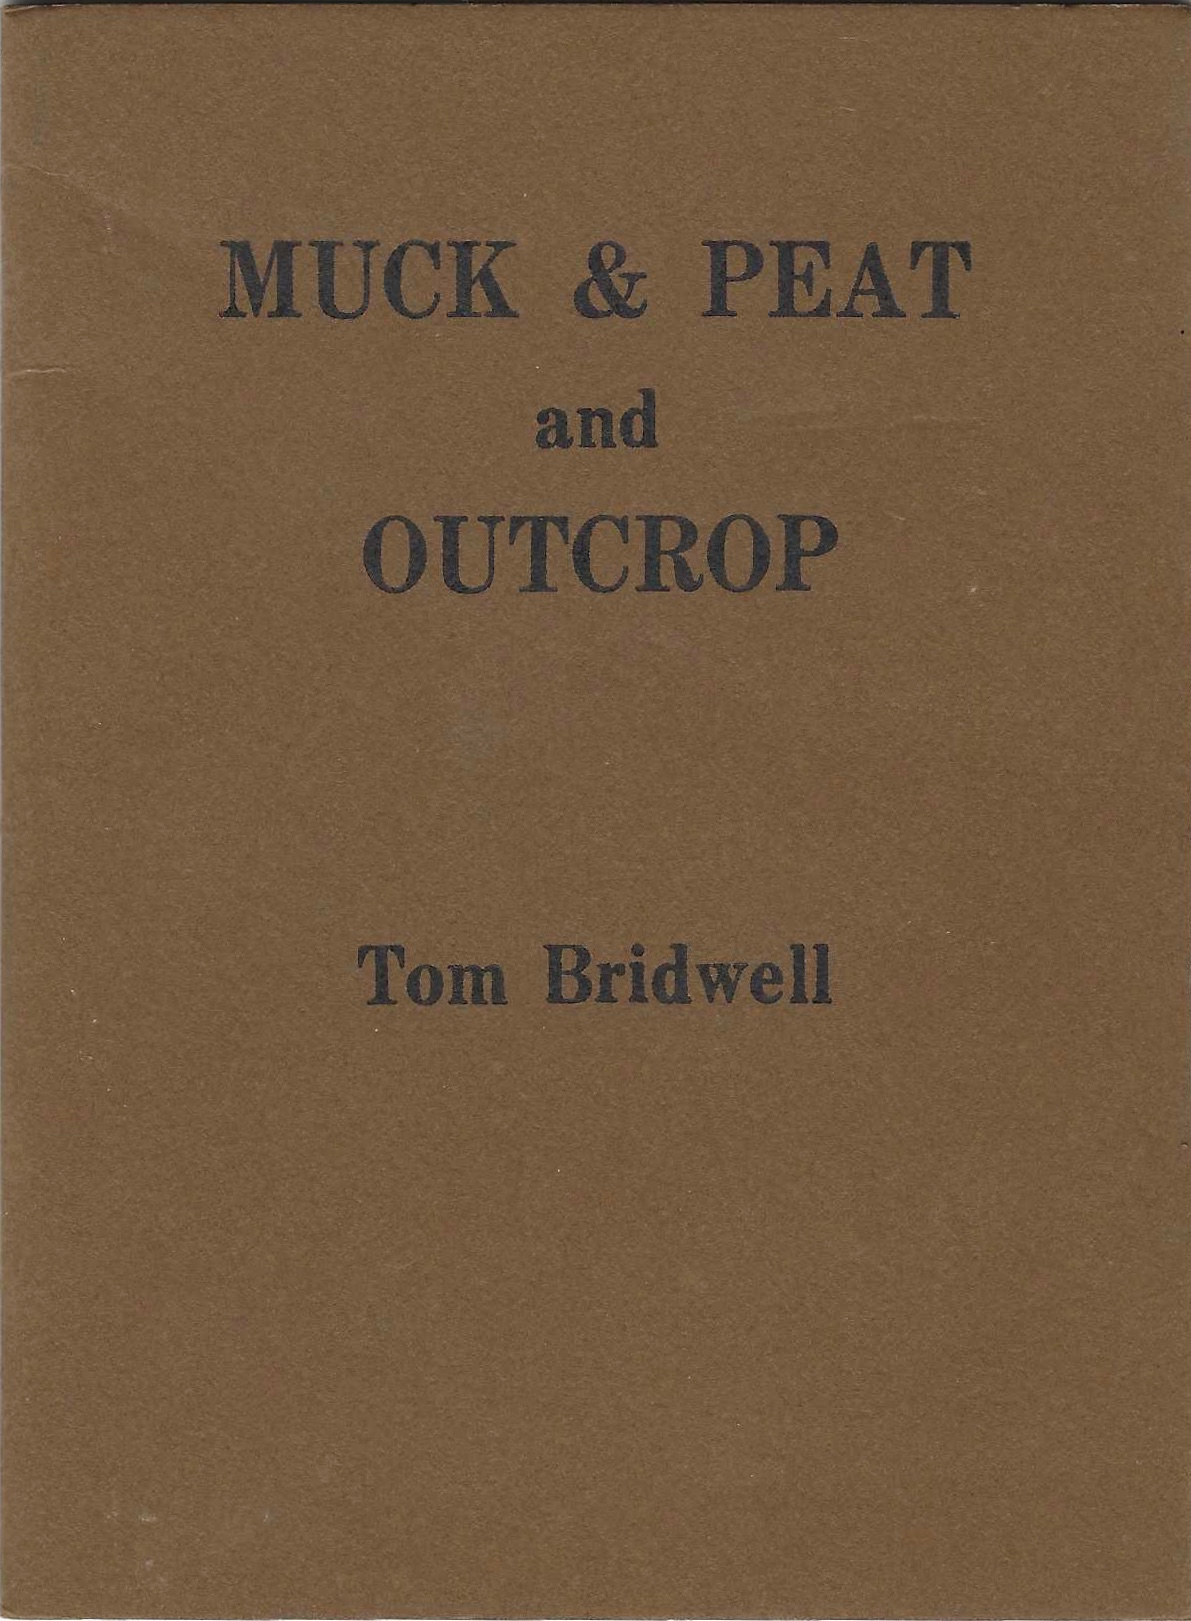 Muck & Peat and Outcrop. Tom Bridwell.